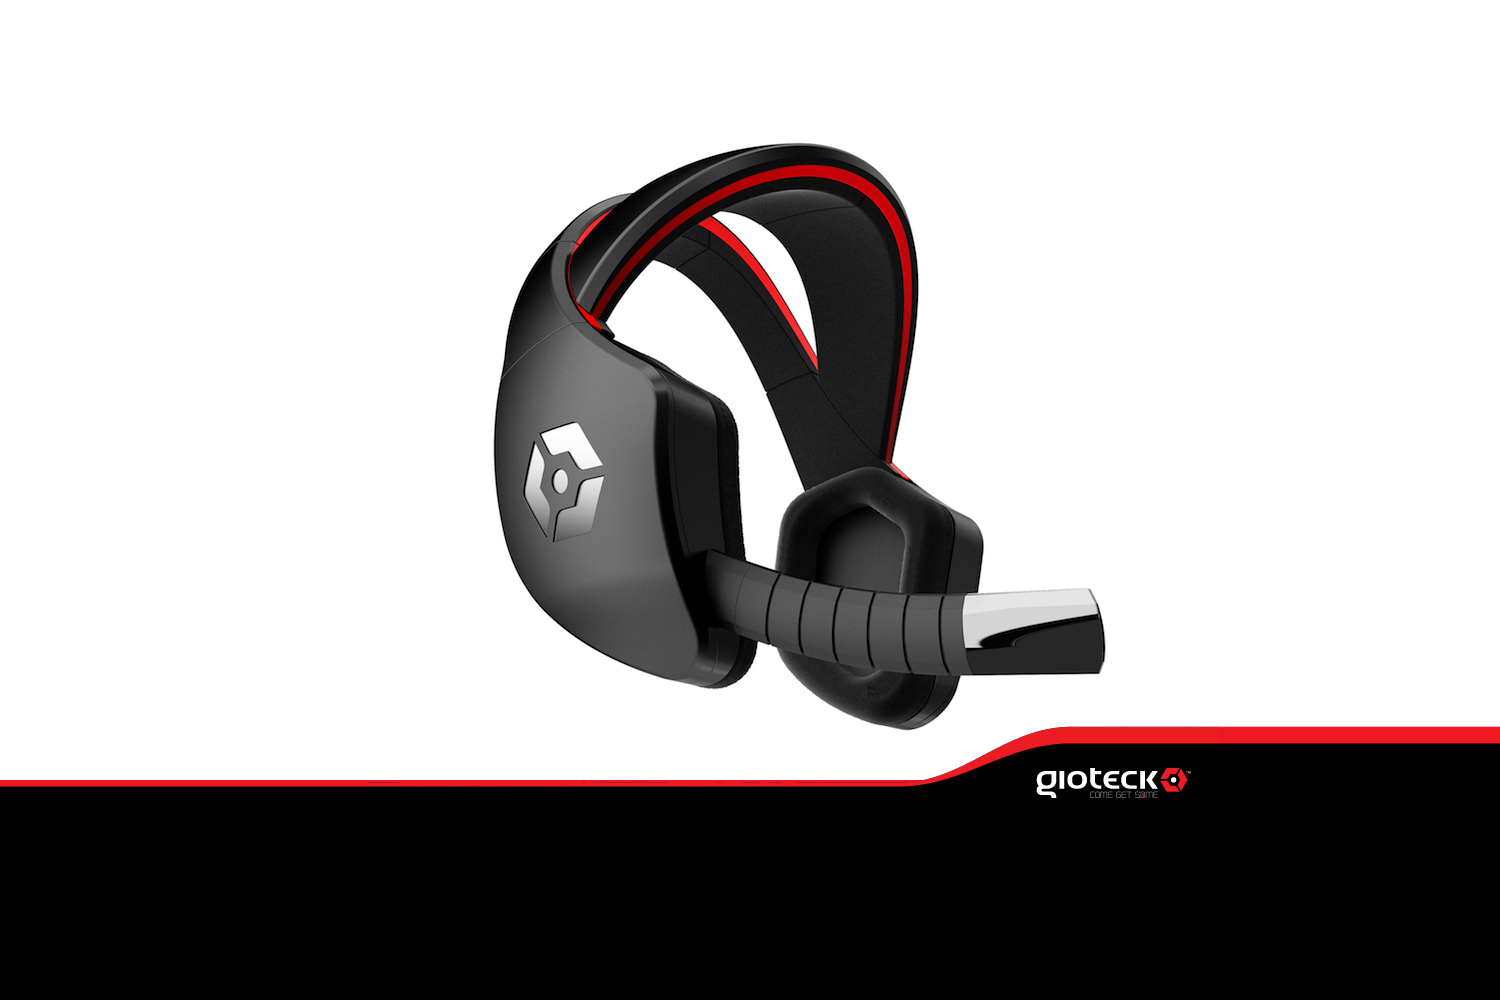 Gioteck introduce new wireless gaming headset – Kranium